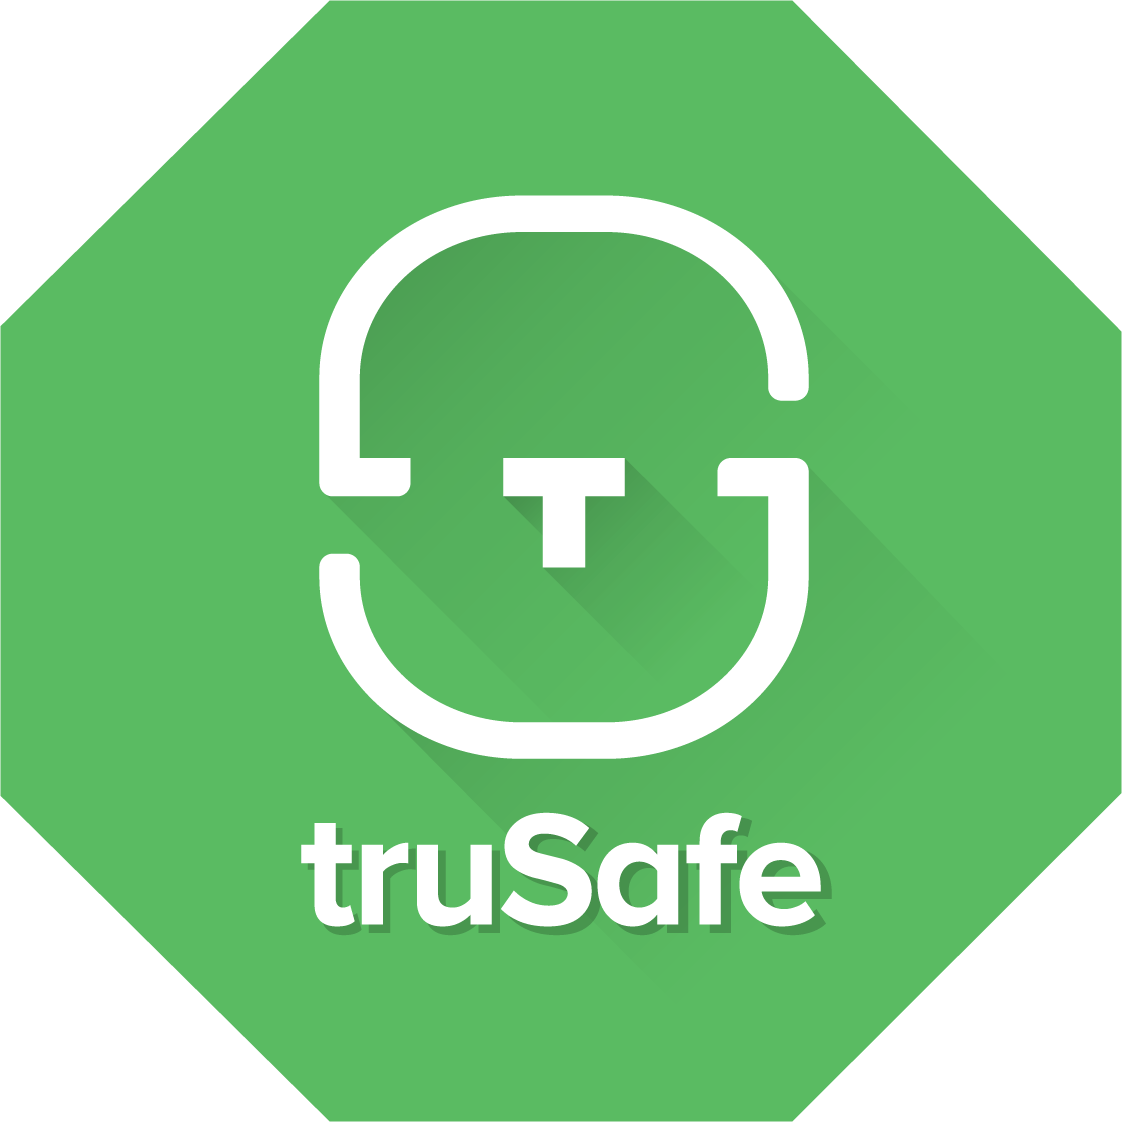 Trusafe smart security sdn bhd 1562858973